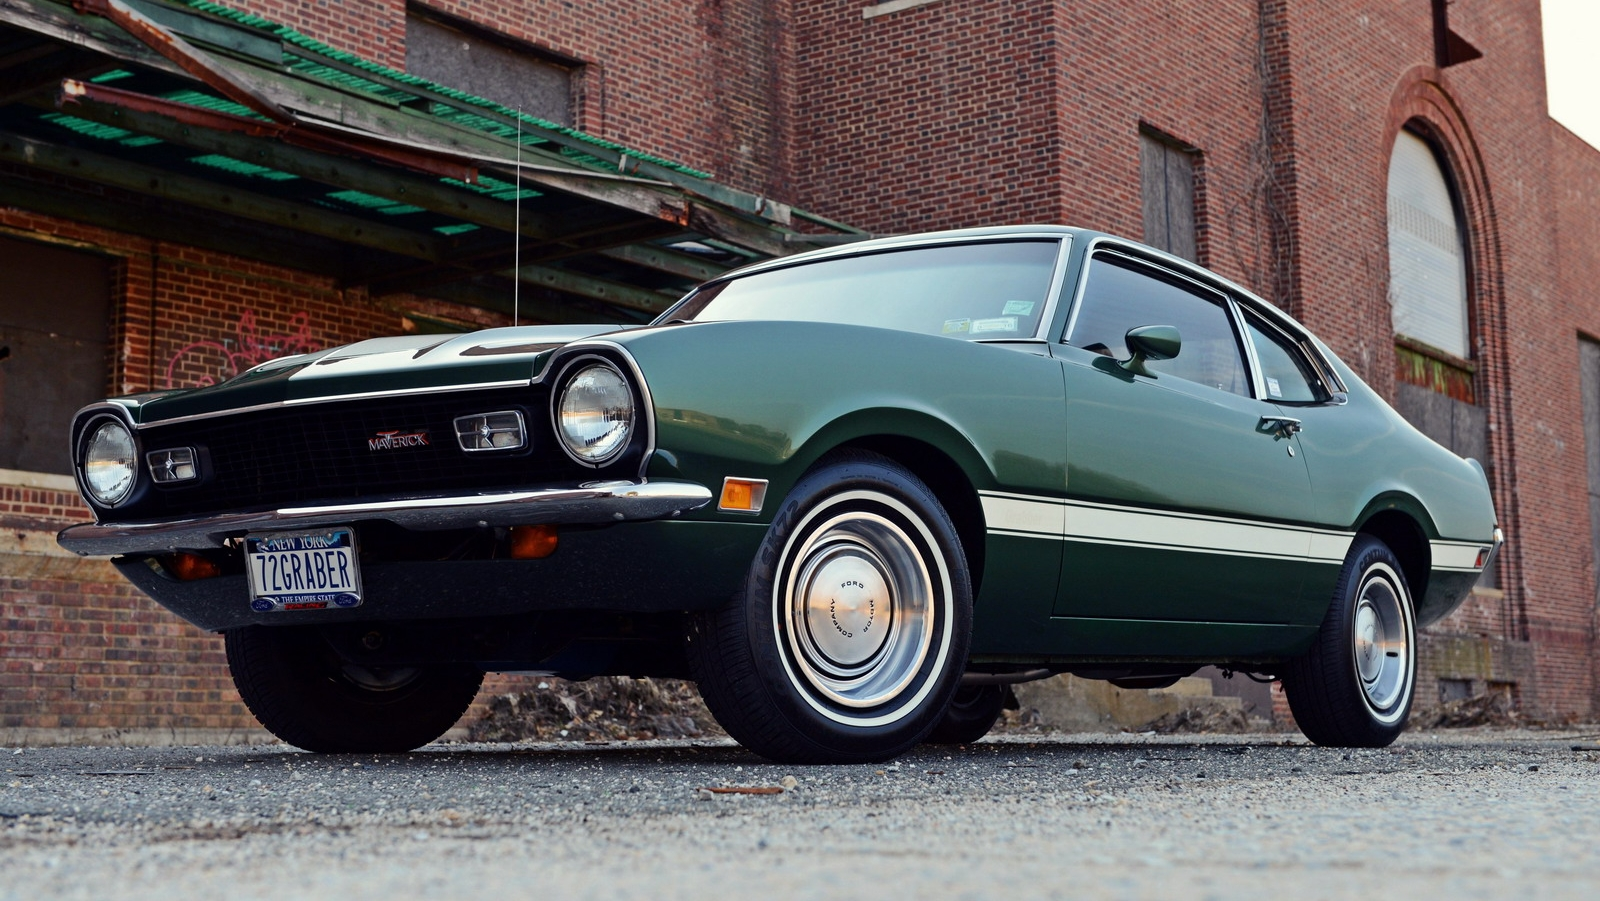 Toyota Different Types Of Cars >> Ford Maverick Review - Gallery - Top Speed